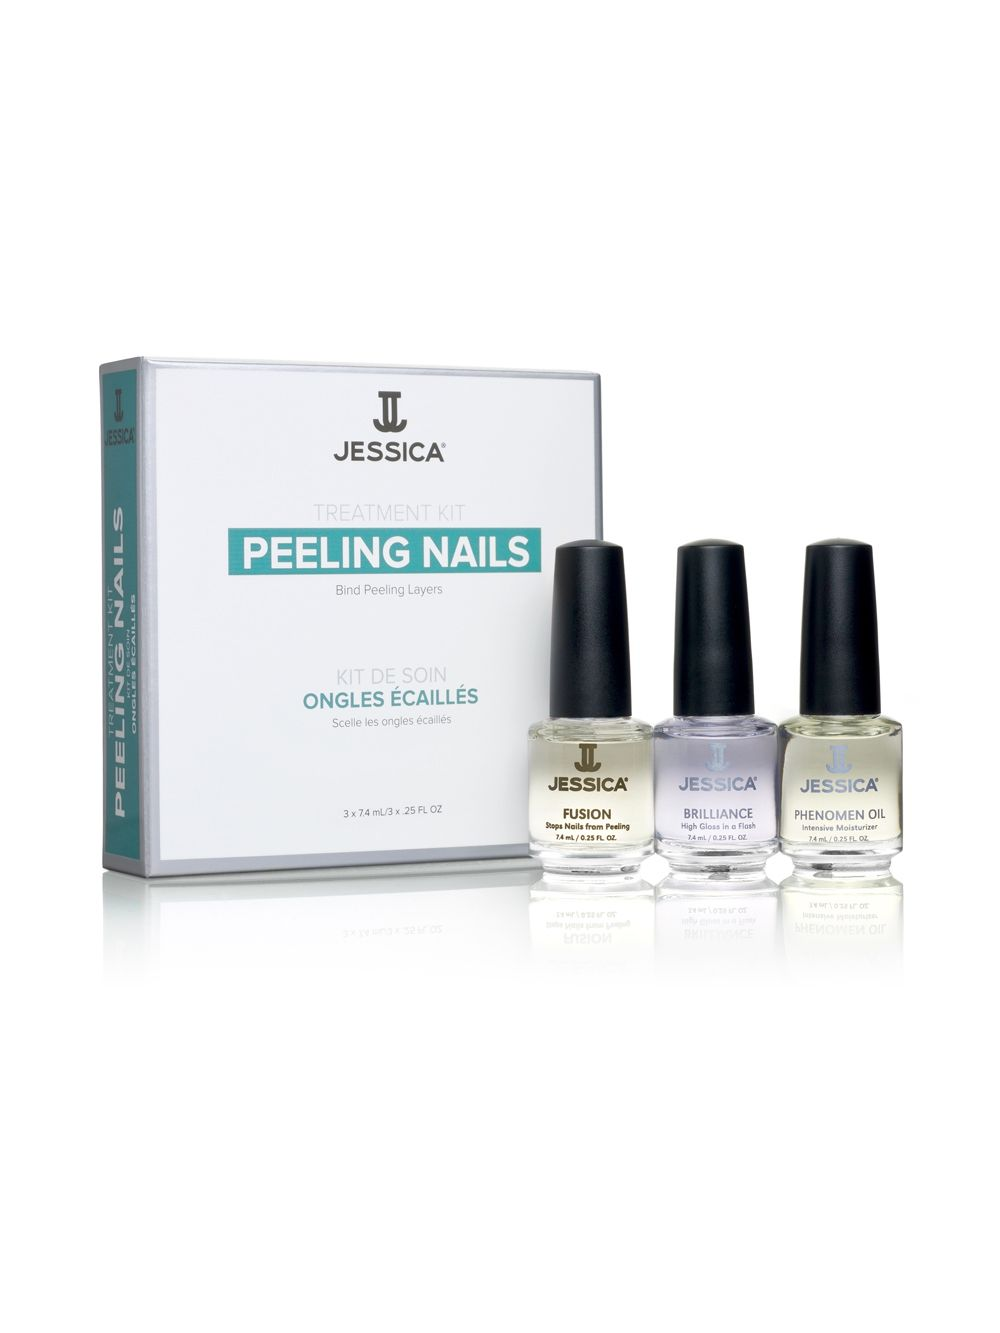 Jessica Peeling Nails Kit